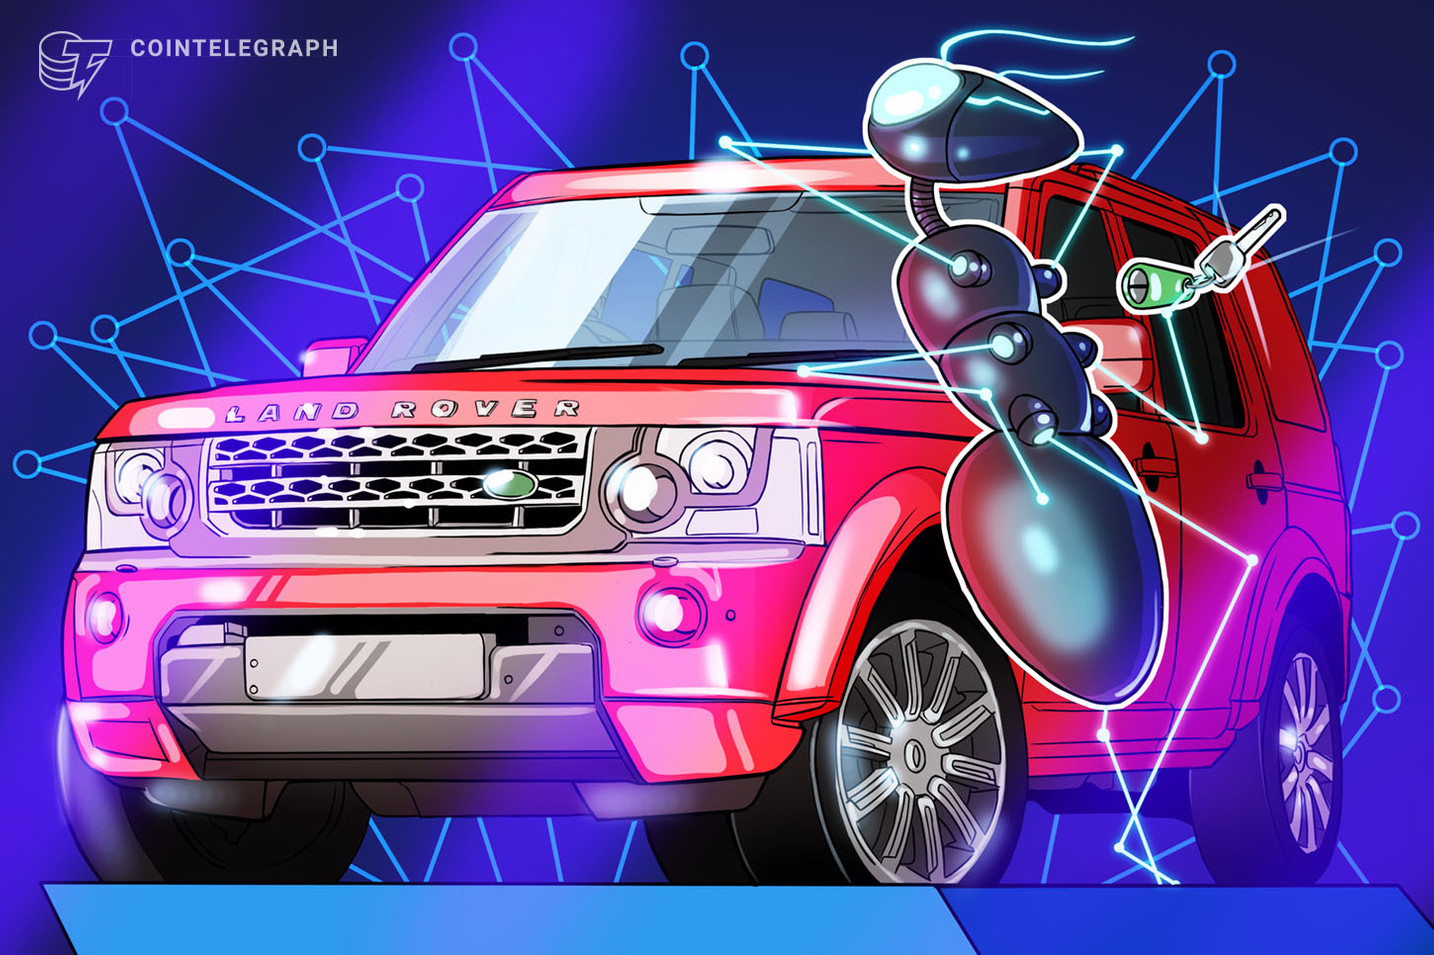 Land Rover Car Company Acknowledges Historical Significance of Bitcoin Network